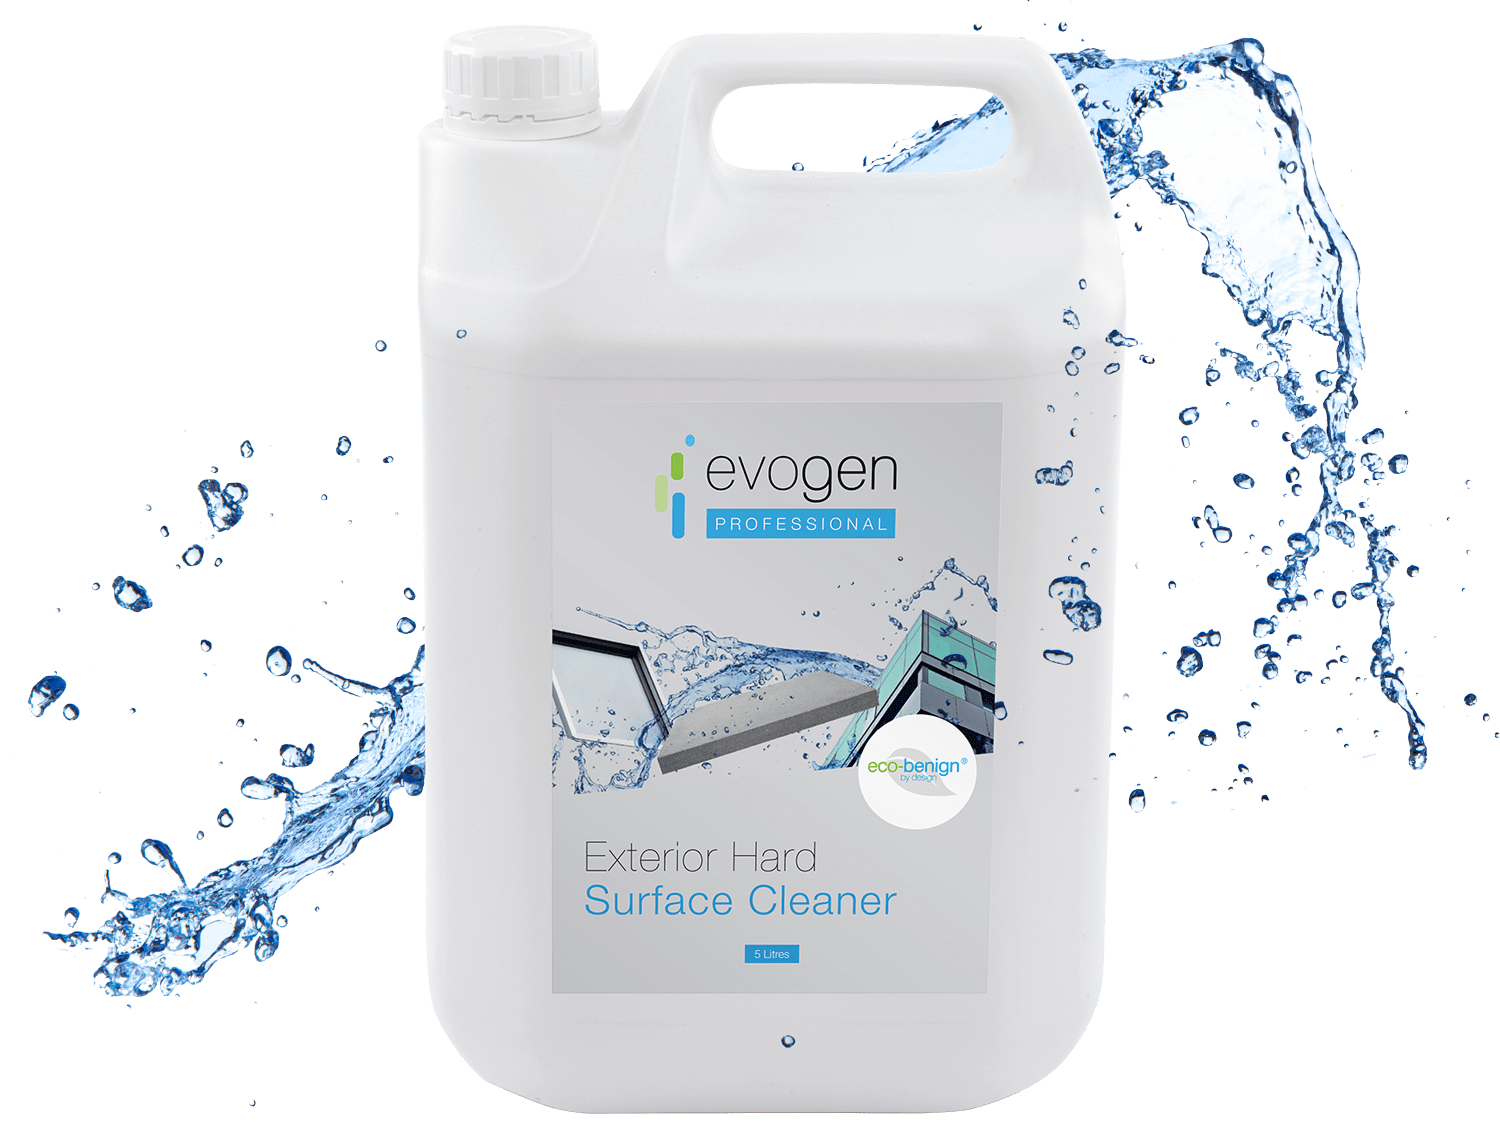 Evogen Professional - Exterior Hard Surface Cleaner